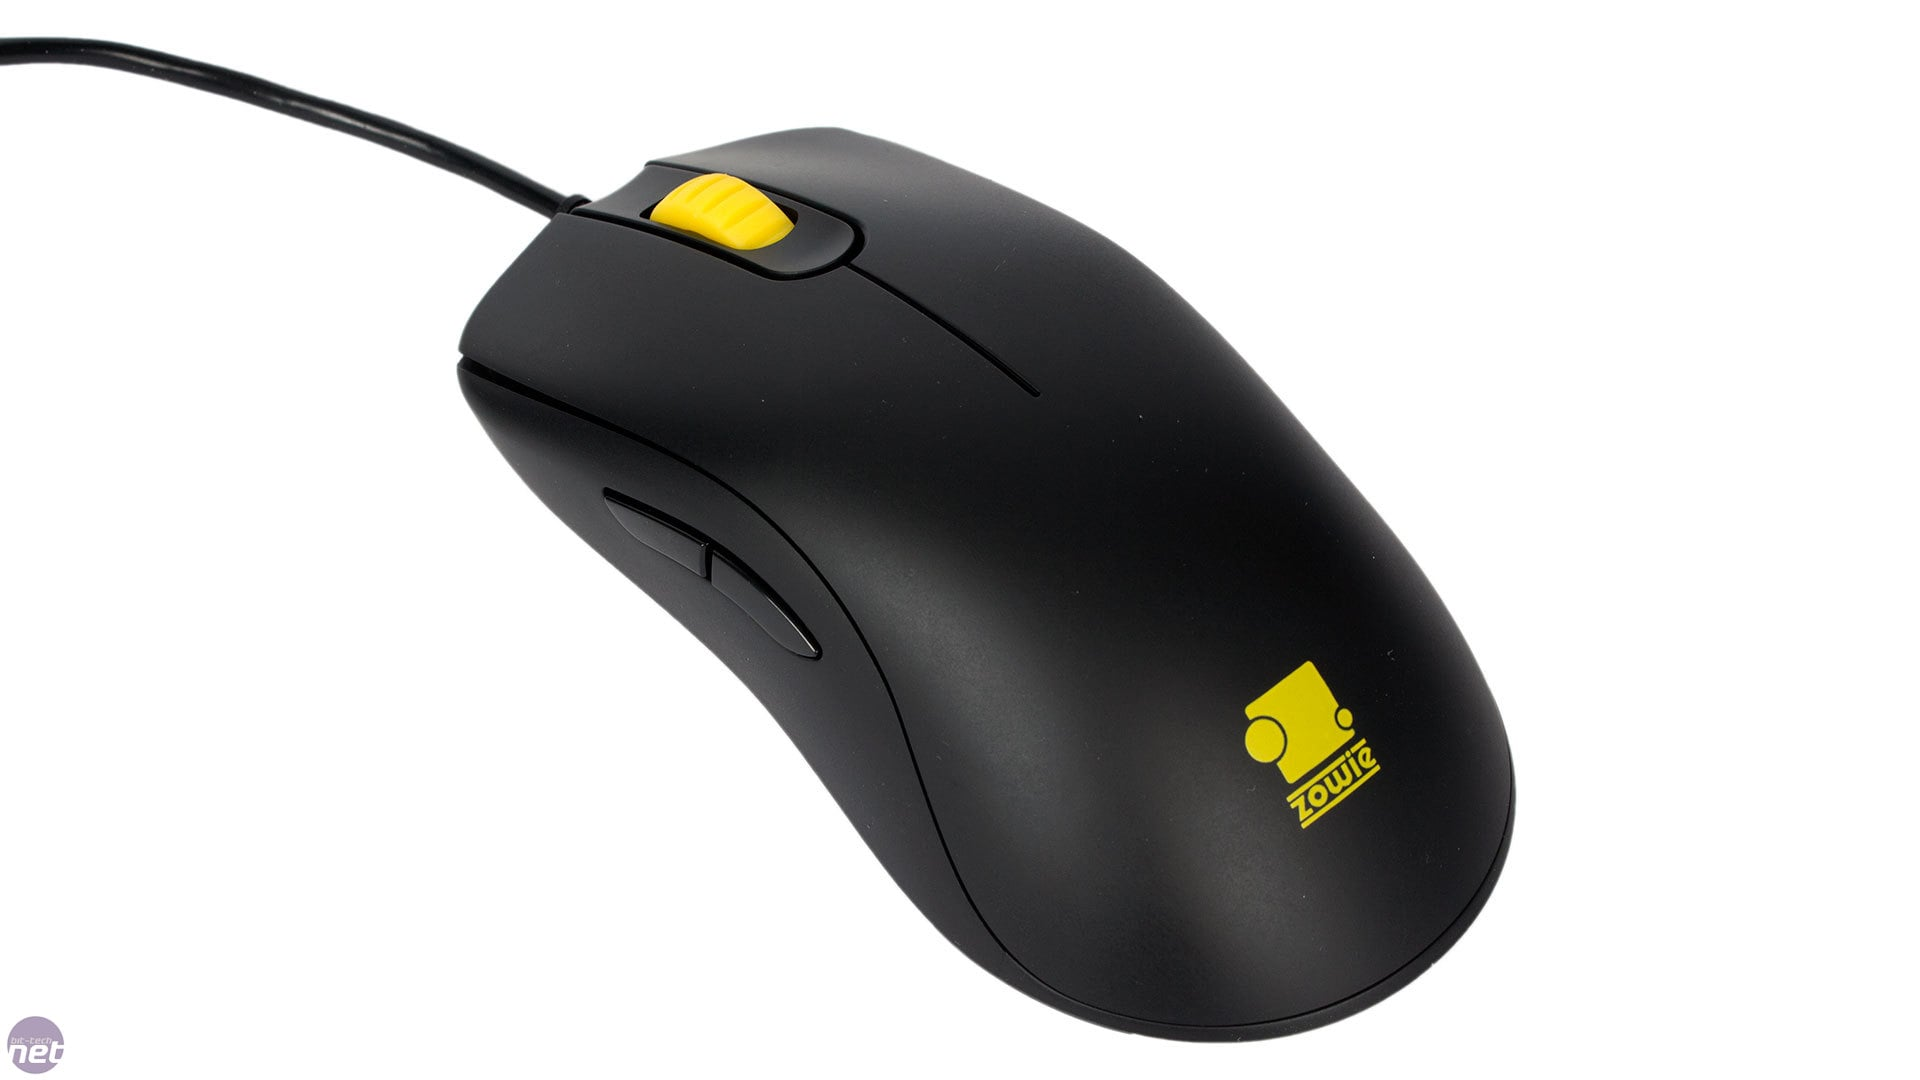 Best gaming mouse for cs go choosing pro gaming mouse in 2019 for Cs go mouse